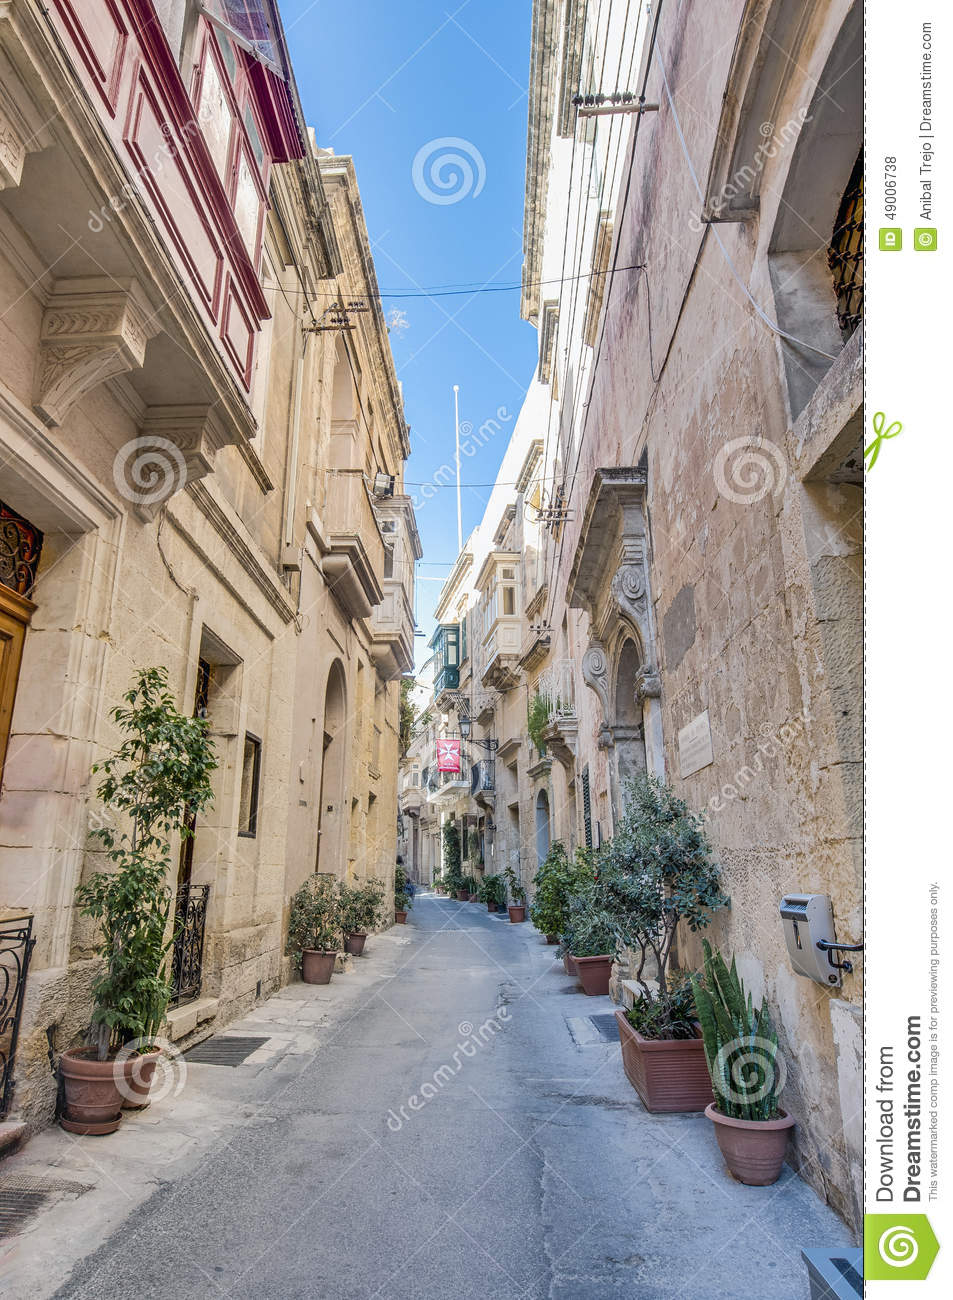 Auberge De France In Vittoriosa, Malta Editorial Stock Photo ...